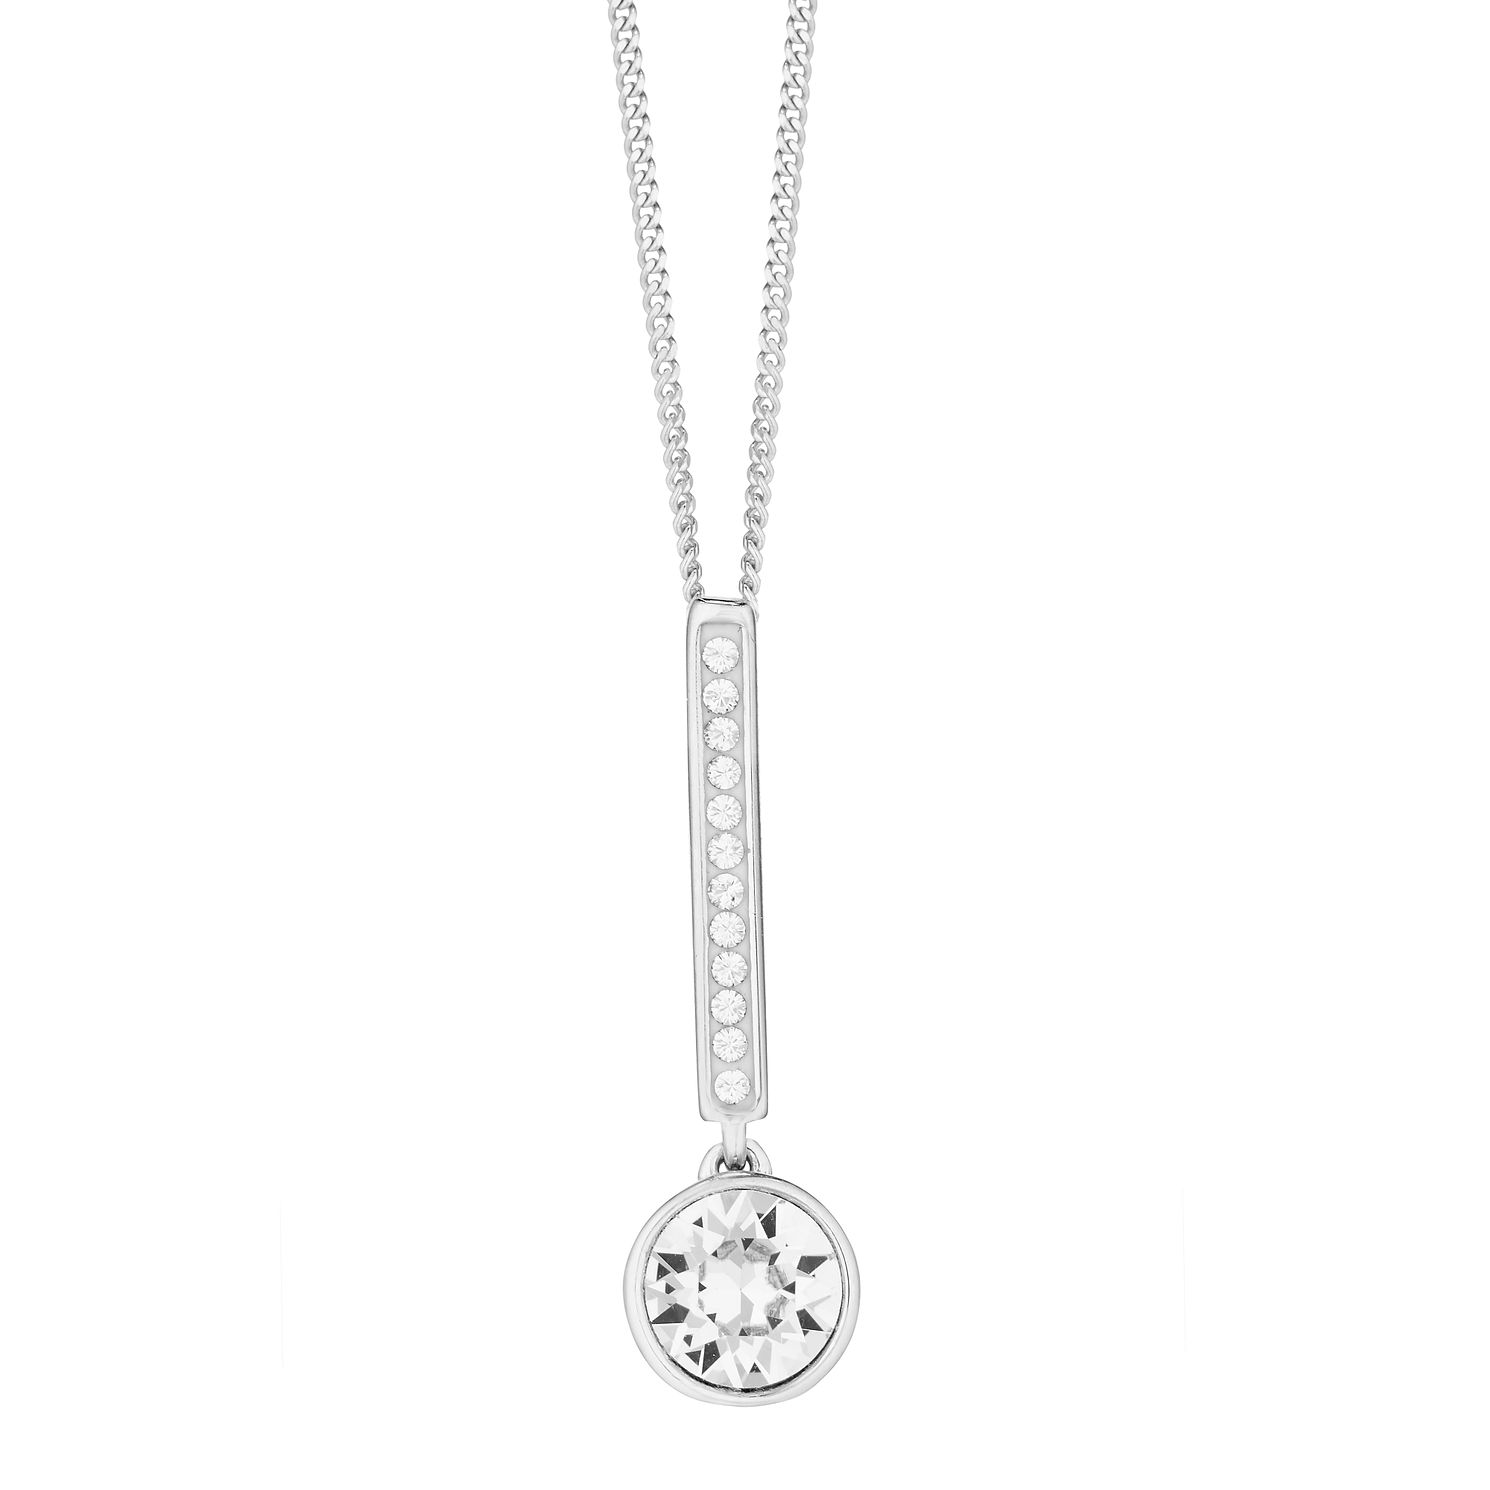 Evoke Silver & Rhodium Plated Crystal Bar Drop Pendant - Product number 3154327